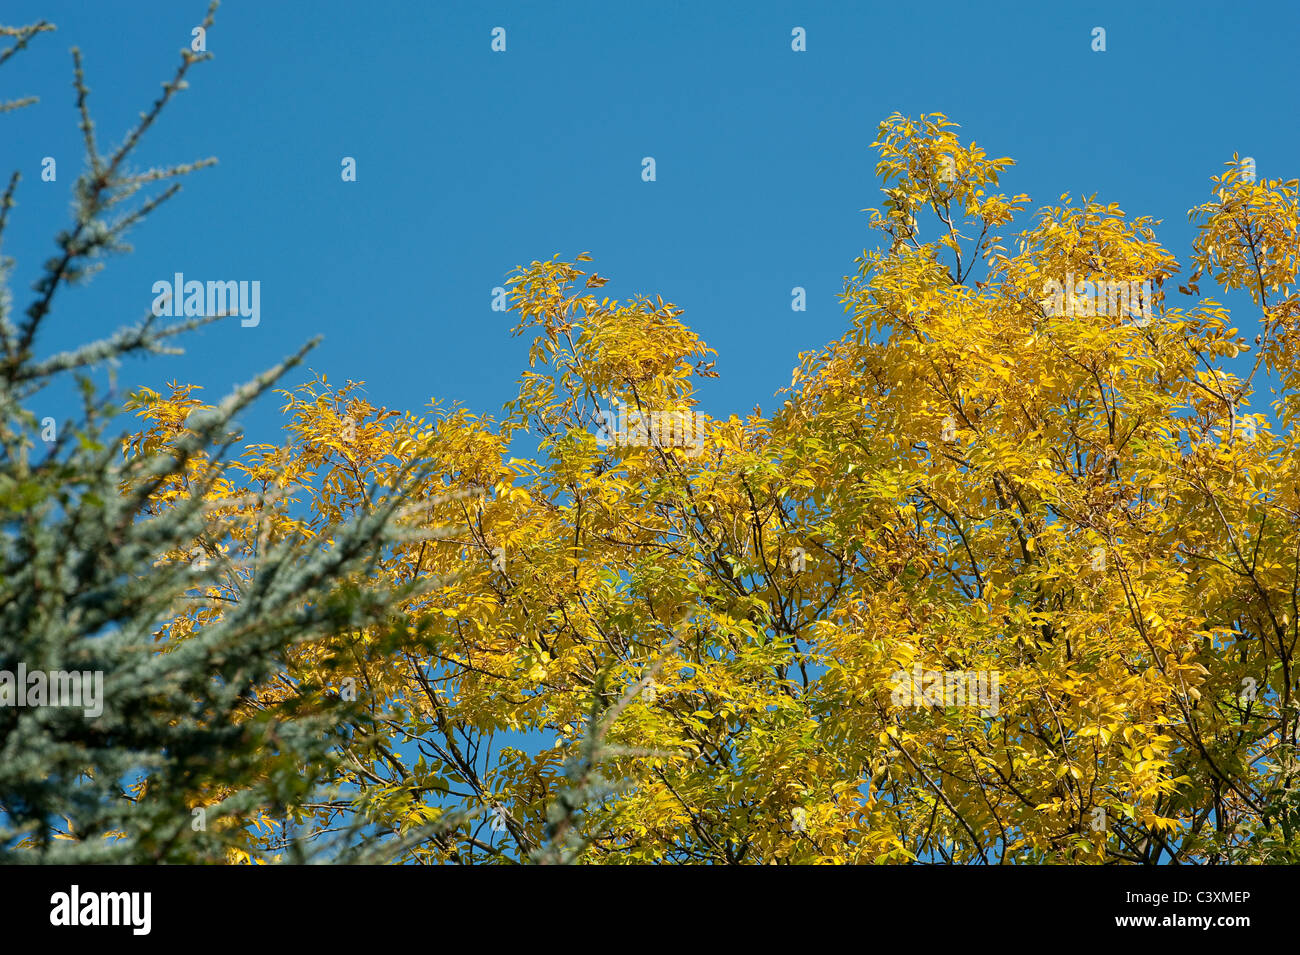 Beautiful view of golden leaves on a tree against a bright blue sky during autumn in England. - Stock Image